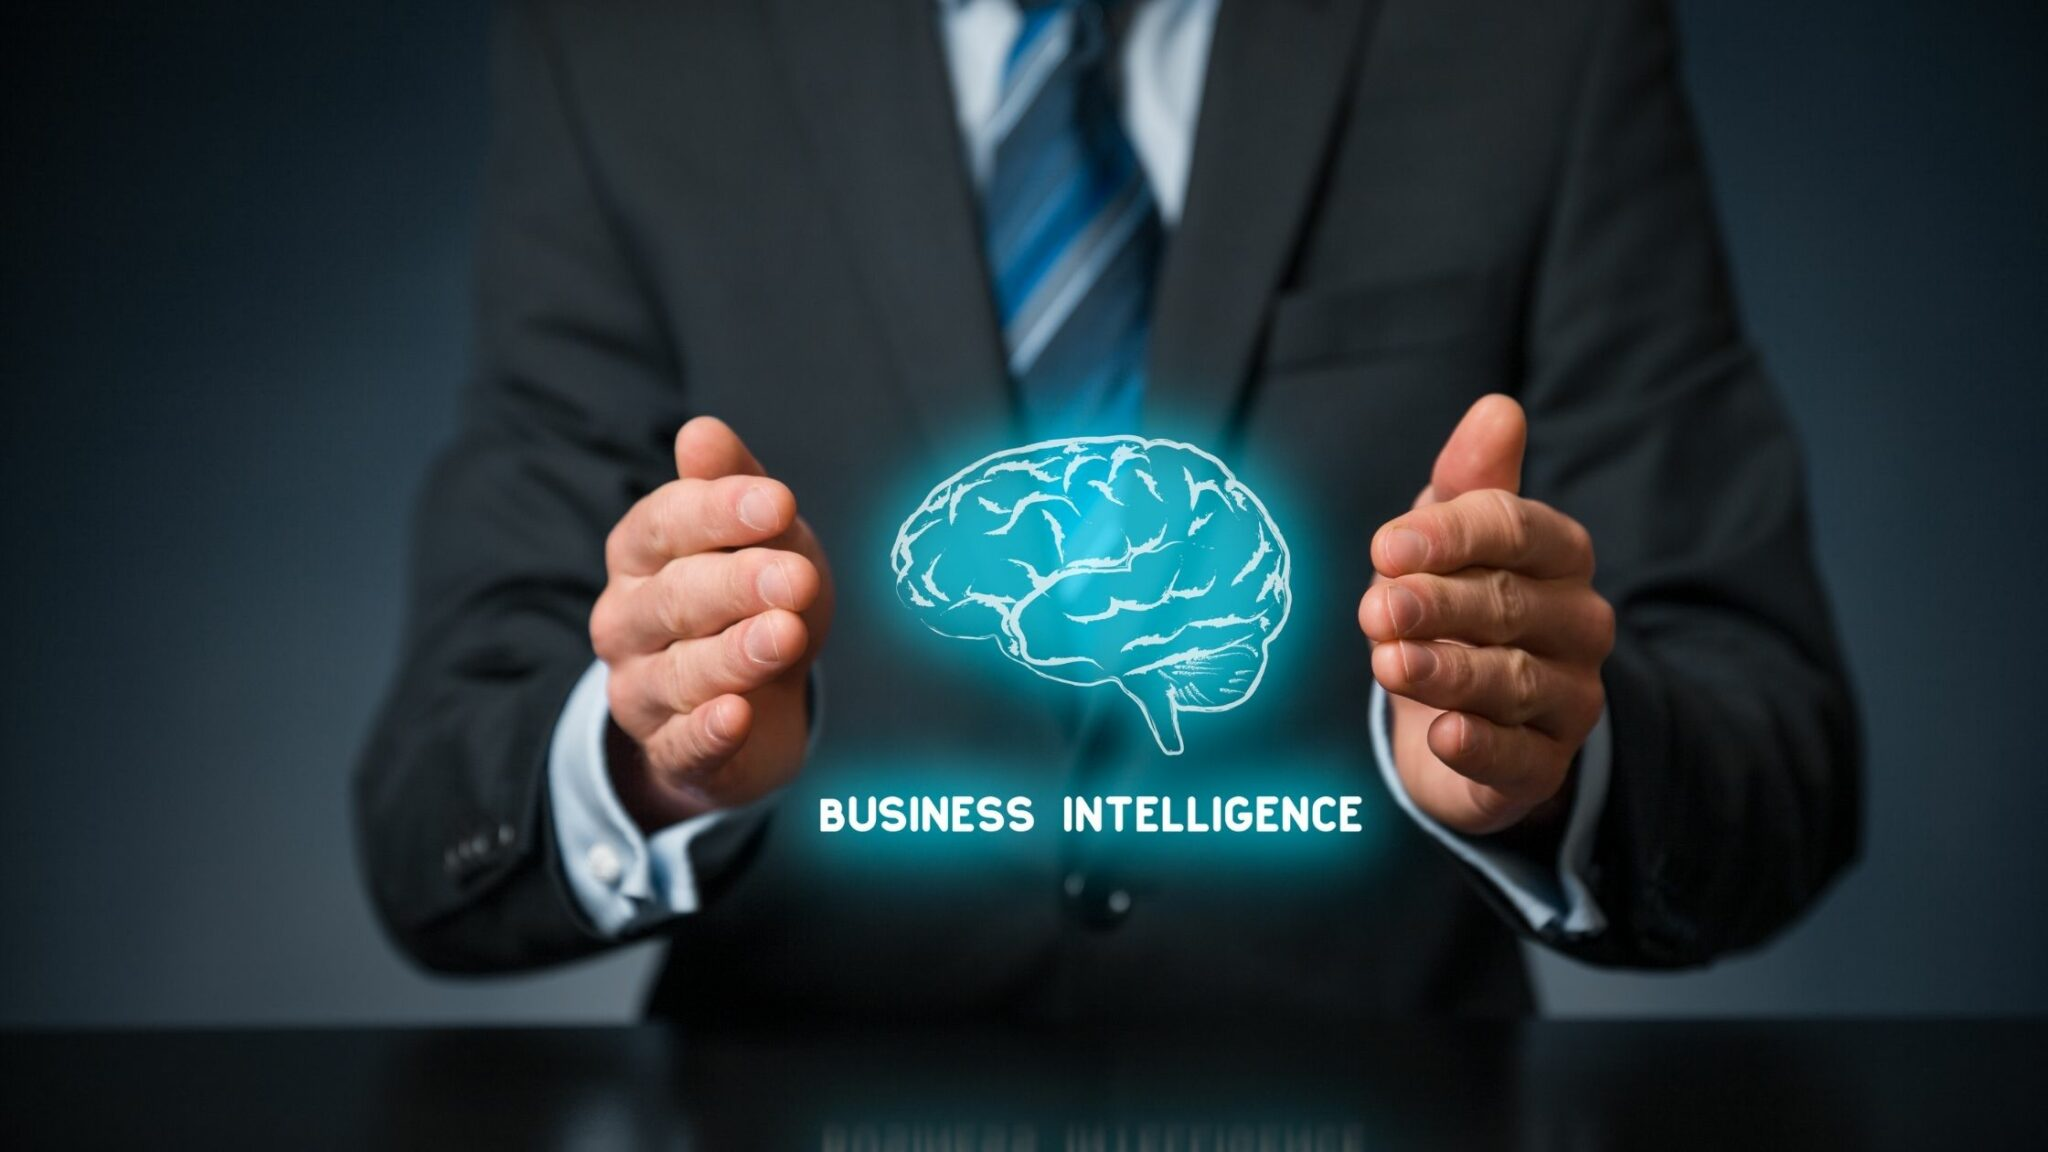 The Four Essential Transformational Intelligences for Business